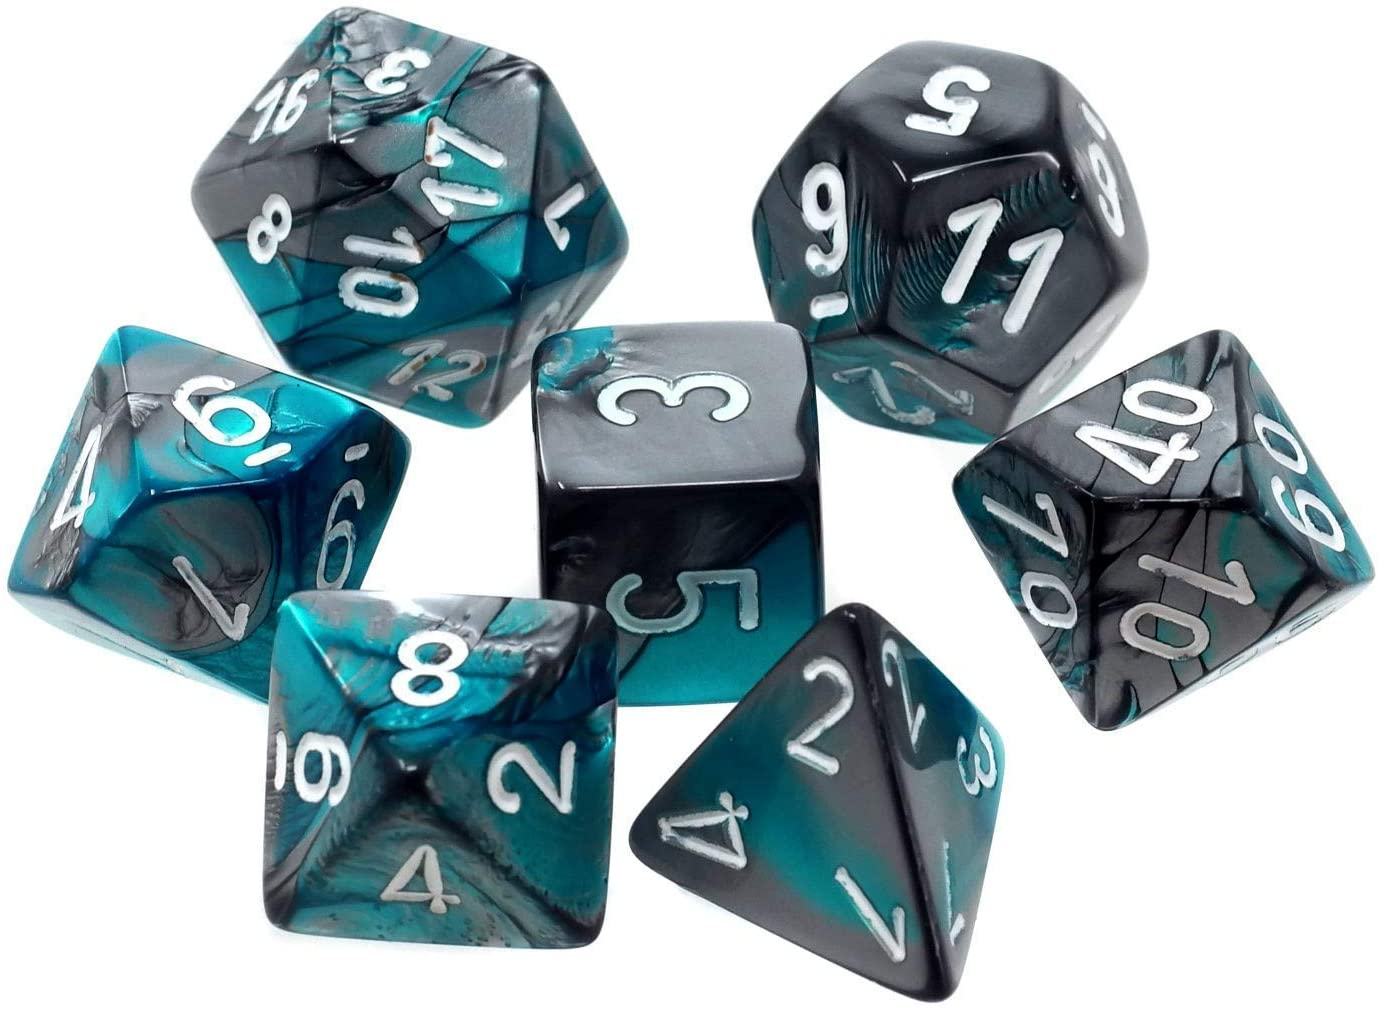 Gemini 6: Poly Steel Teal/White (7) | Phoenix Comics and Games